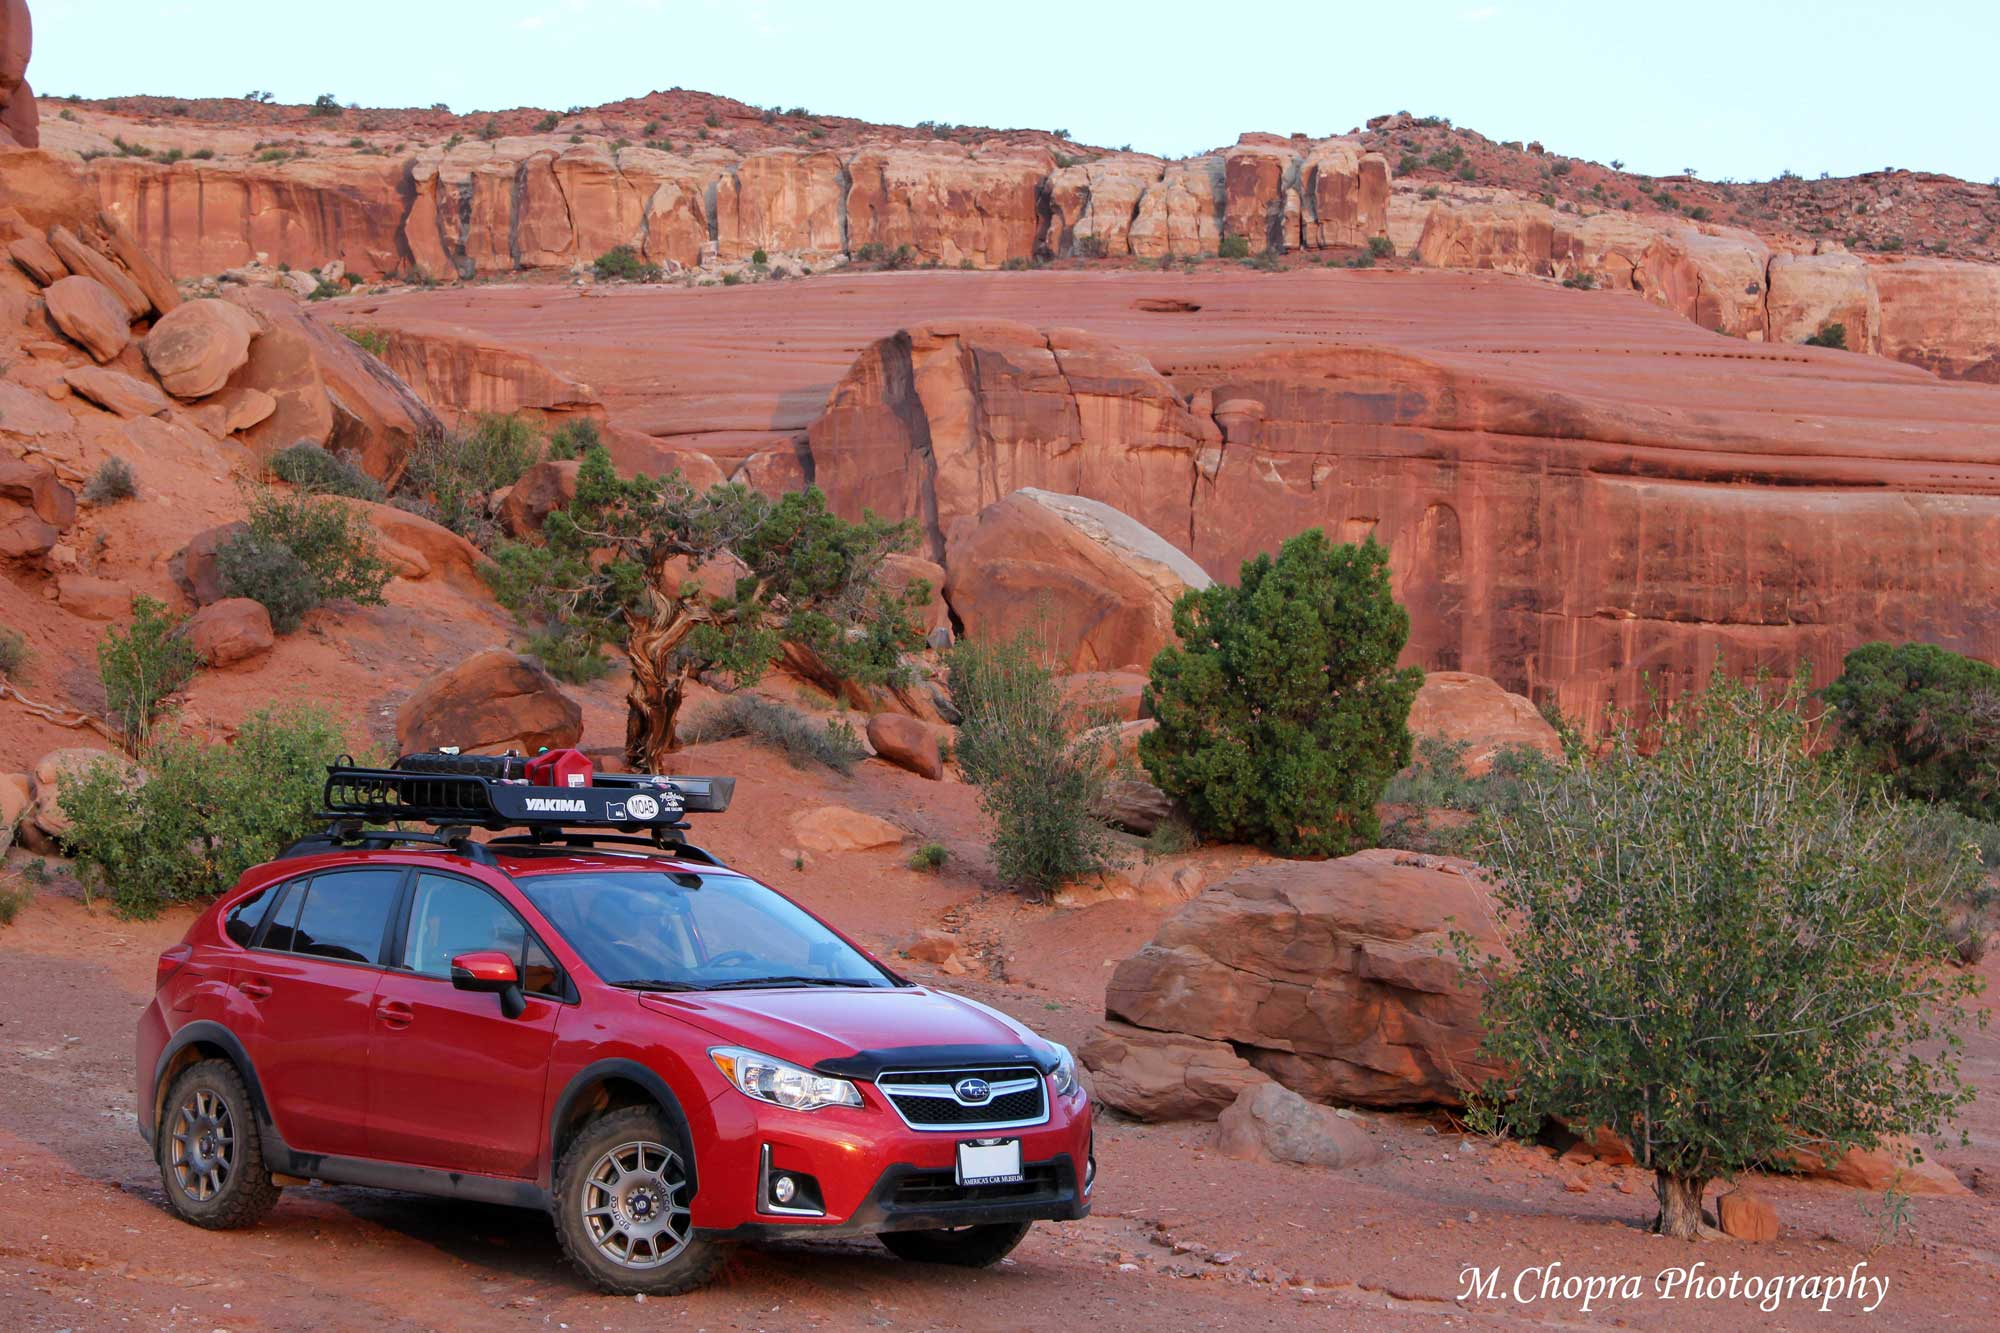 Marlon's Subaru Crosstrek on a trail in Moab, UT